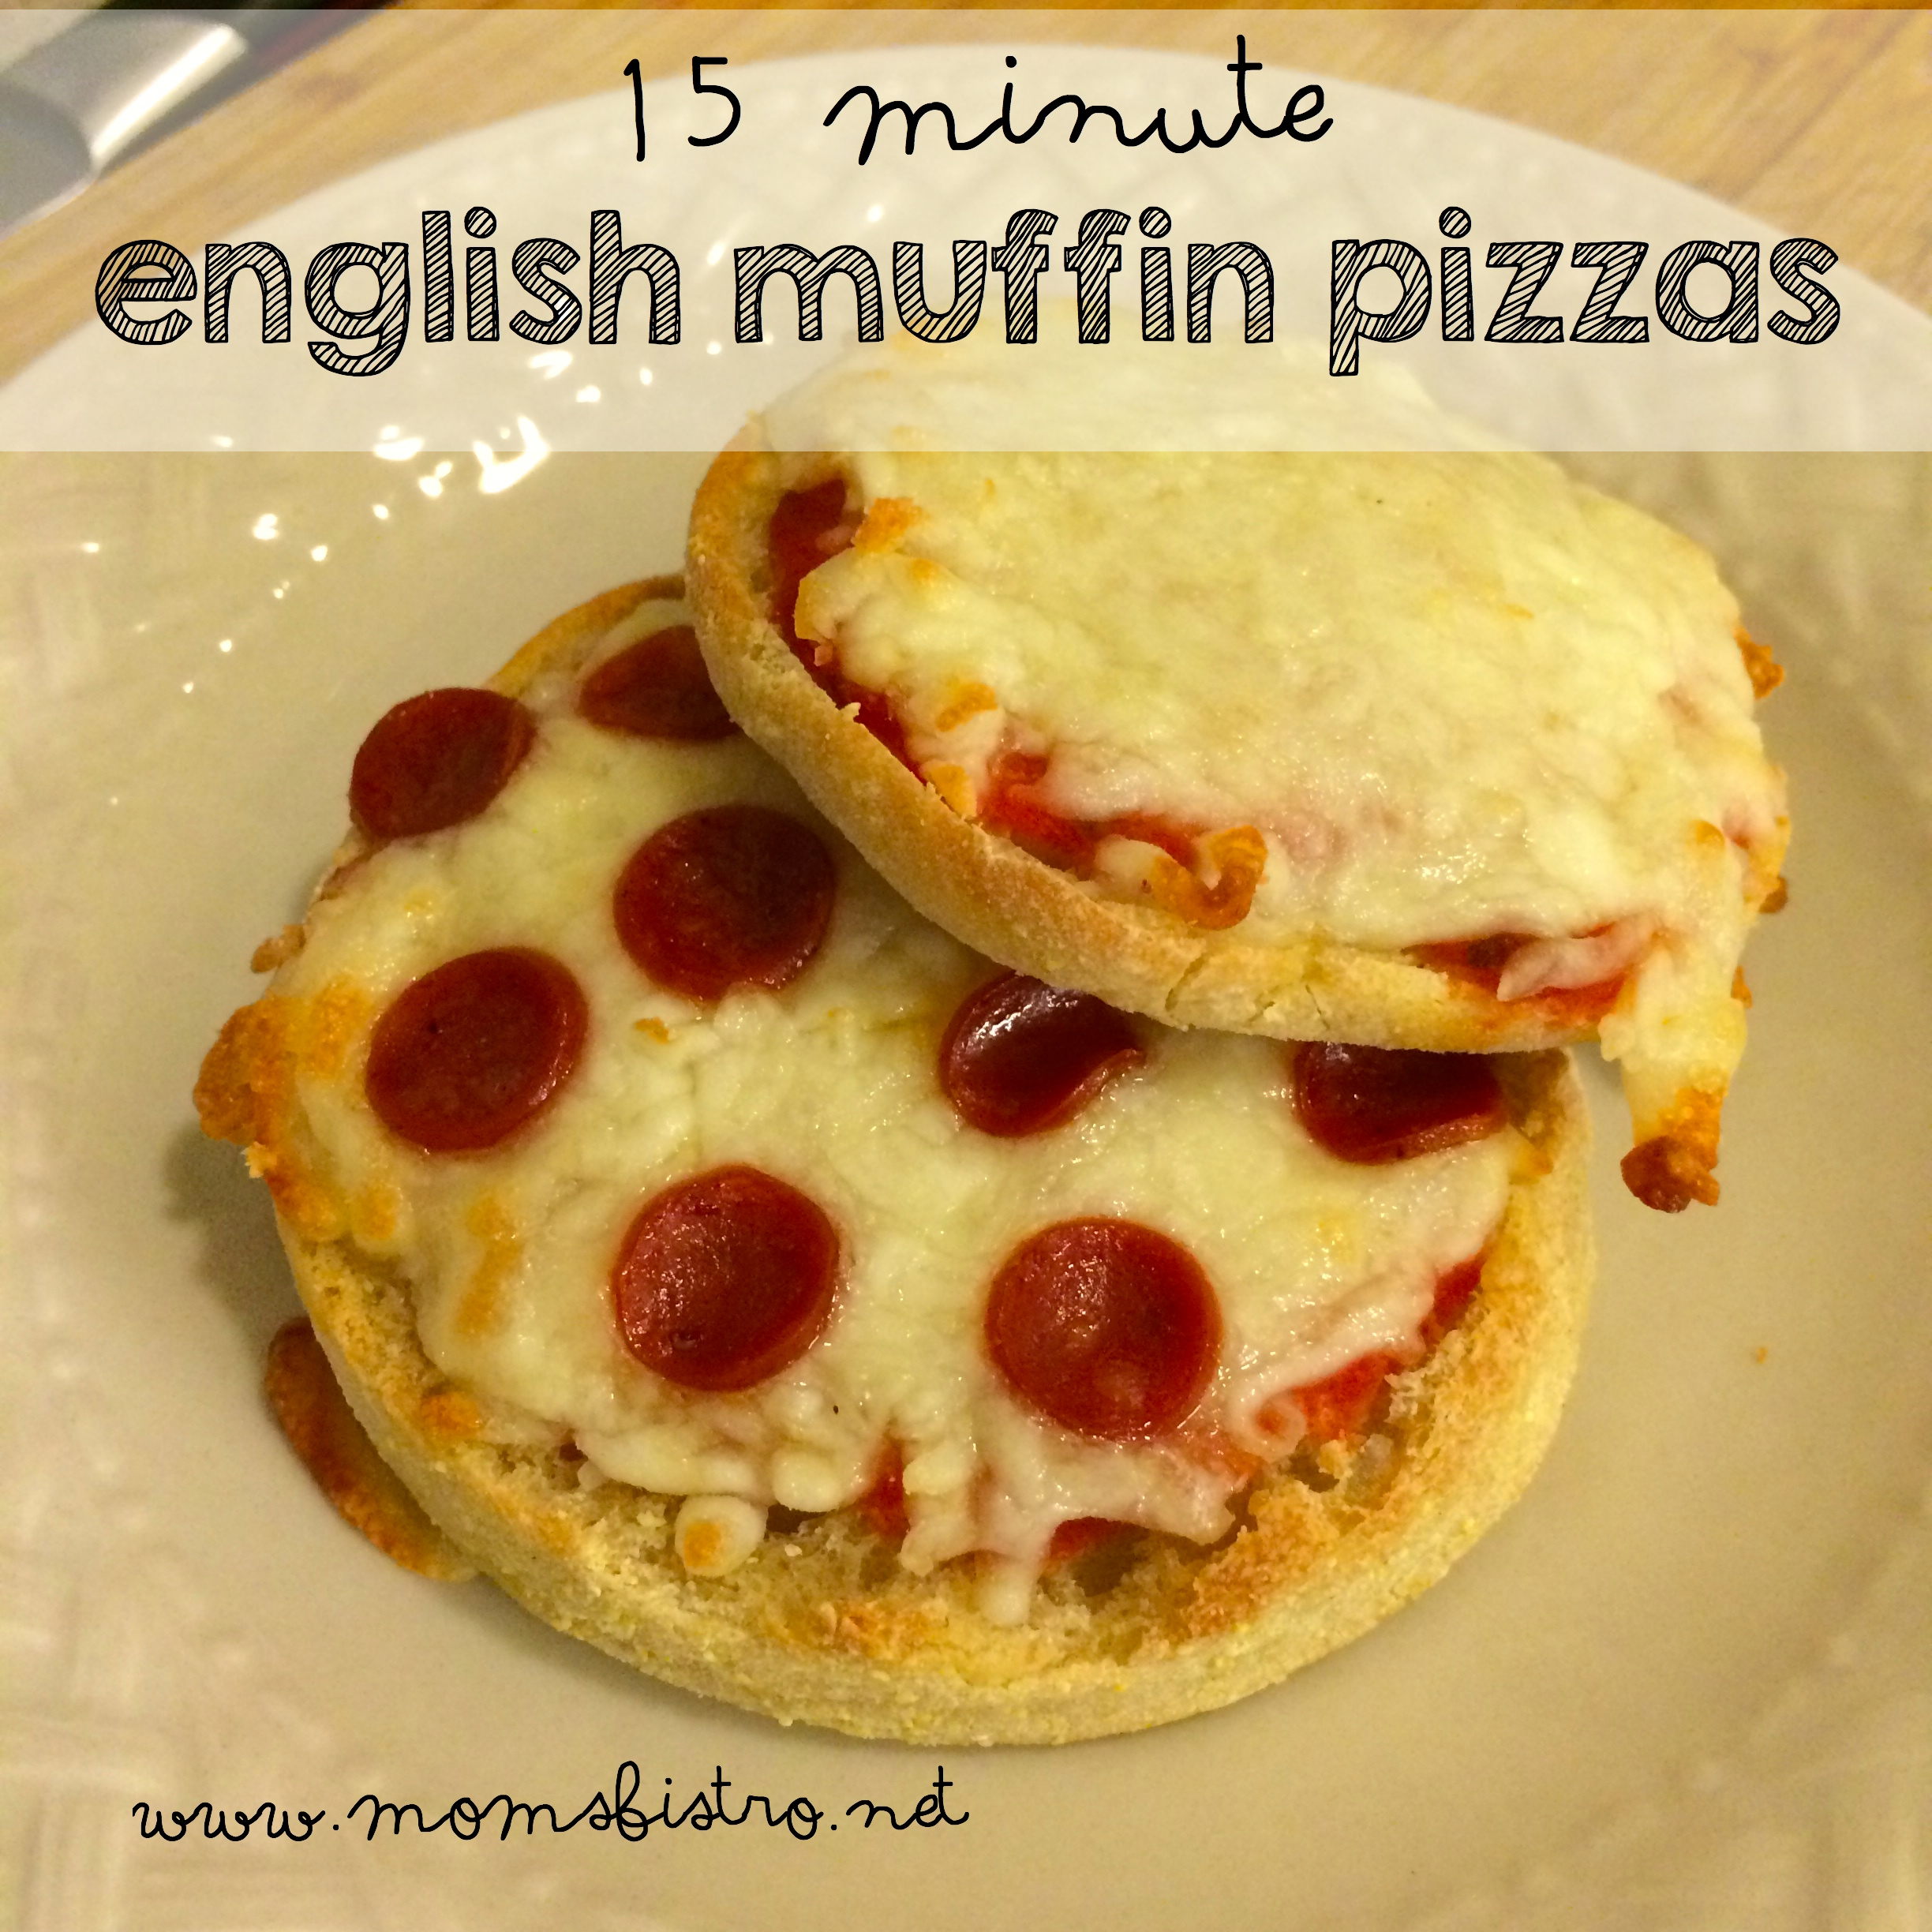 A fathers day dessert the kids can make dirt cake recipe moms cooking with kids quick easy 15 minute english muffin pizza recipe forumfinder Images